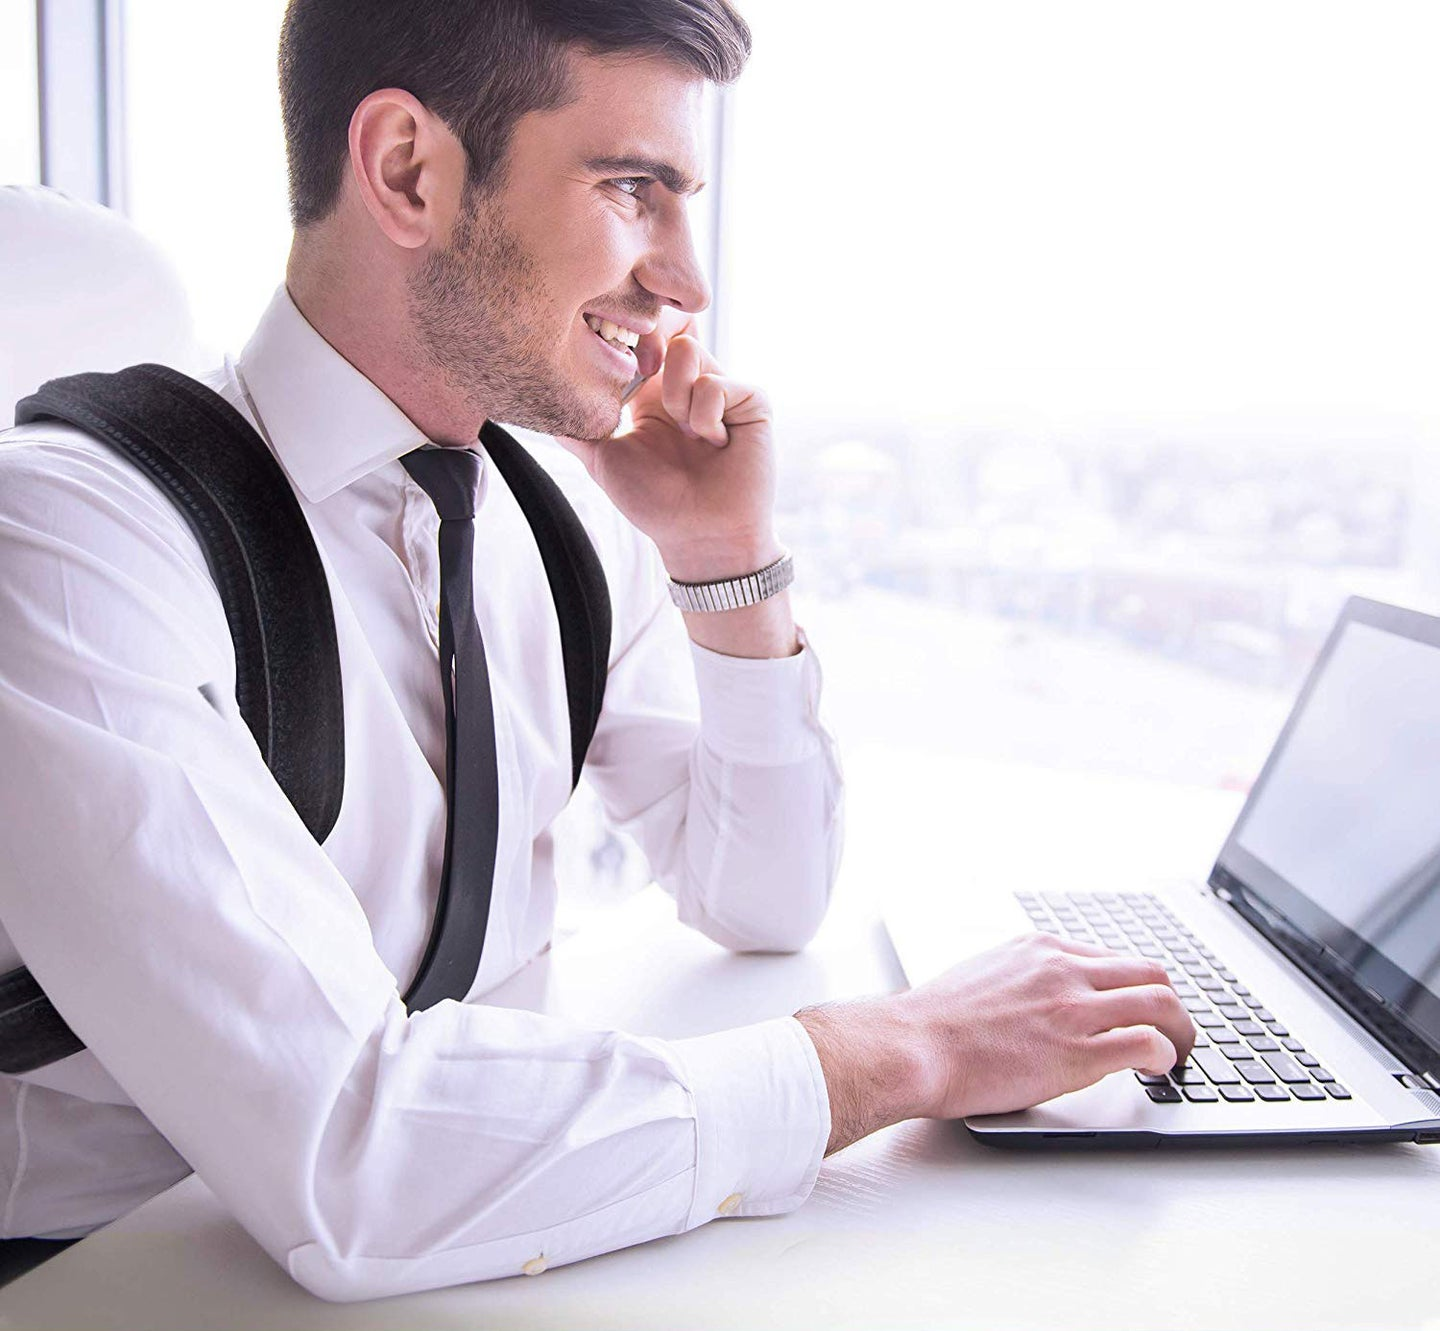 Man working at an office at a laptop